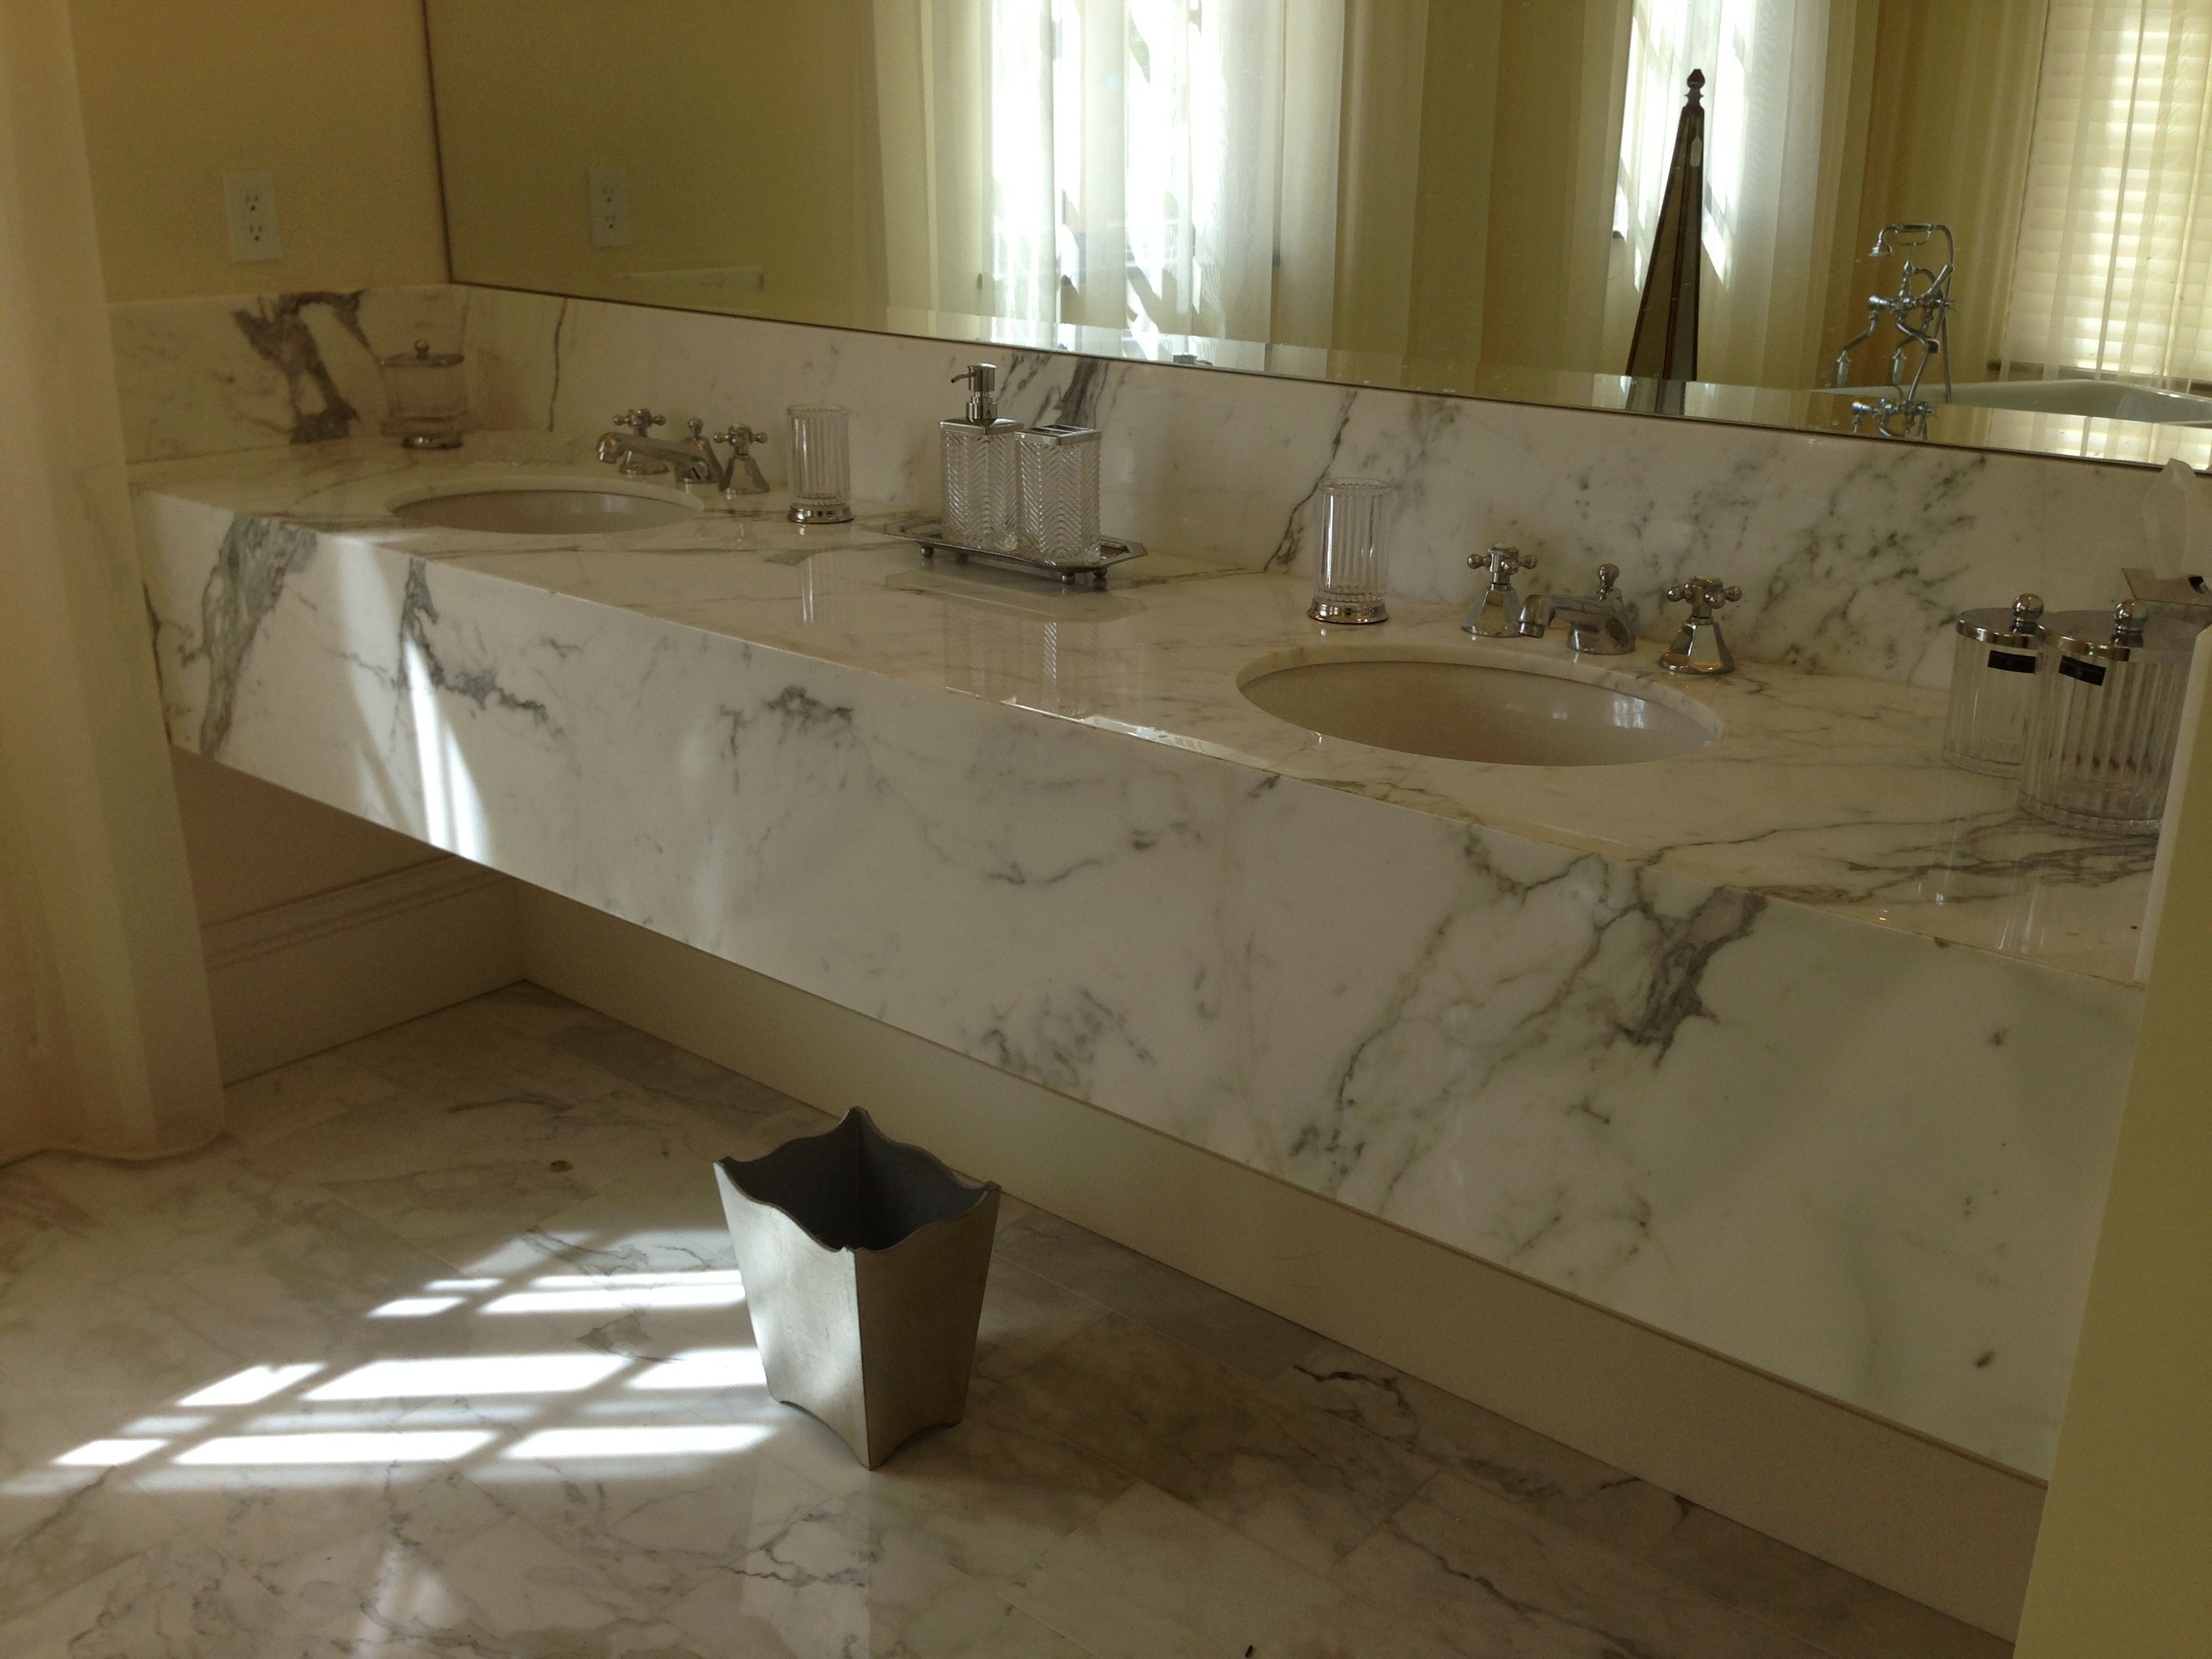 Bathroom Sinks Orlando white / grey bathroom countertop with oval undermount sinks | adp